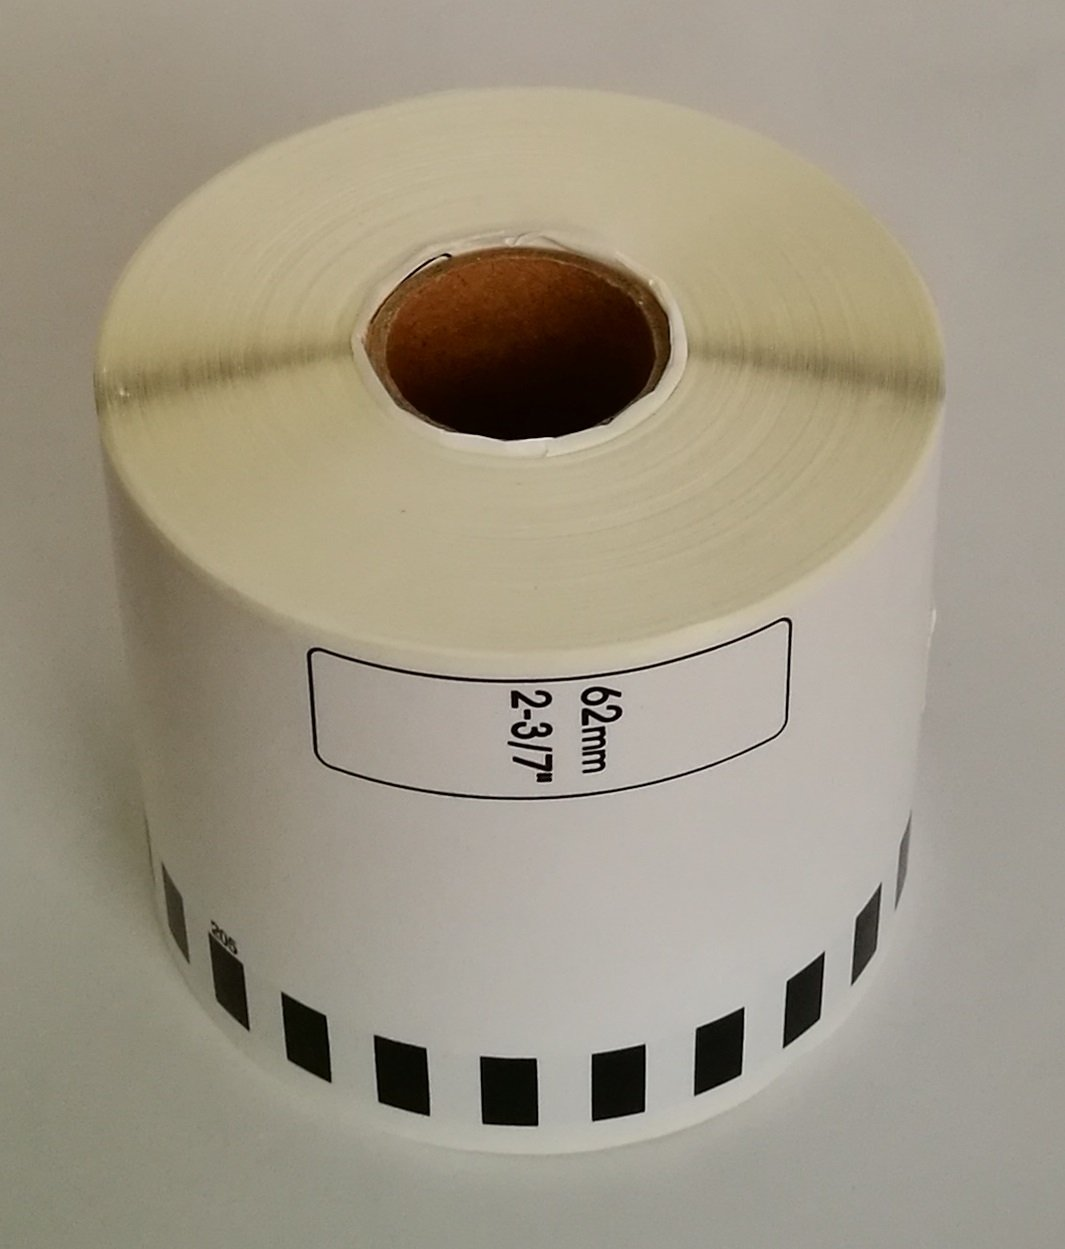 Hydrapower Brother Compatible DK4205 Removable Continuous Paper Labels (6 rolls + 1 reusable cartridge)